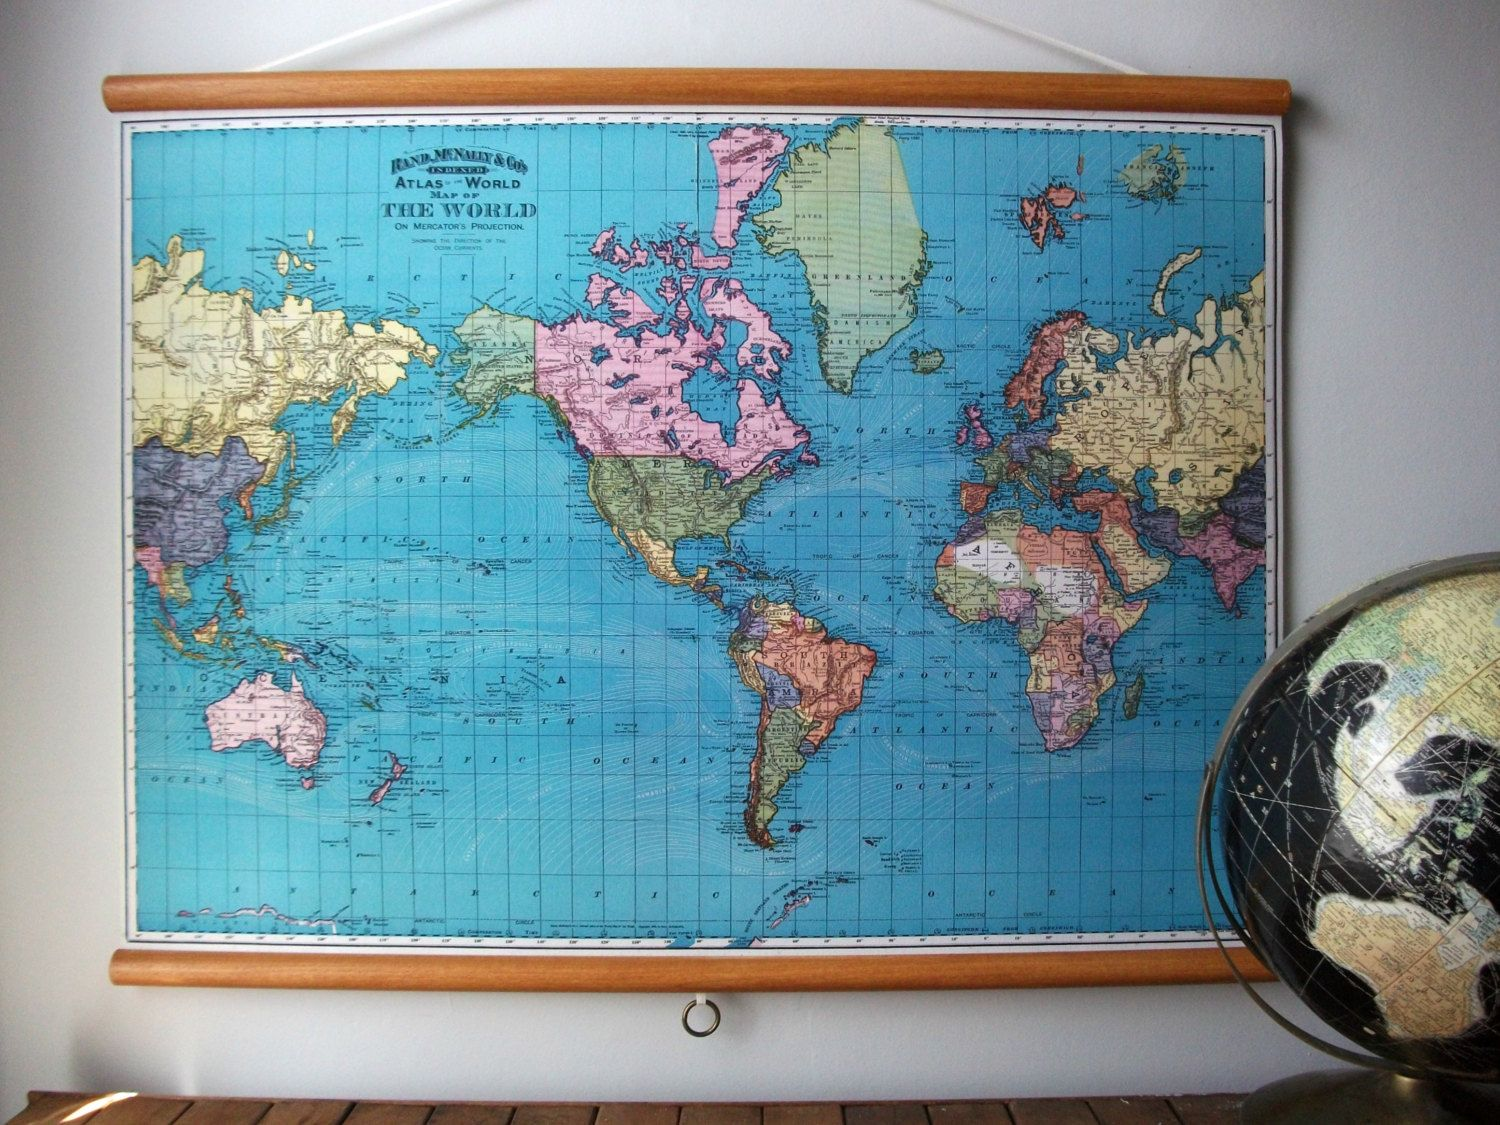 World map 1897 vintage pull down reproduction canvas fabric or large pull down map educational chart vintage style wall hanging canvas poster print with stained wood gumiabroncs Images